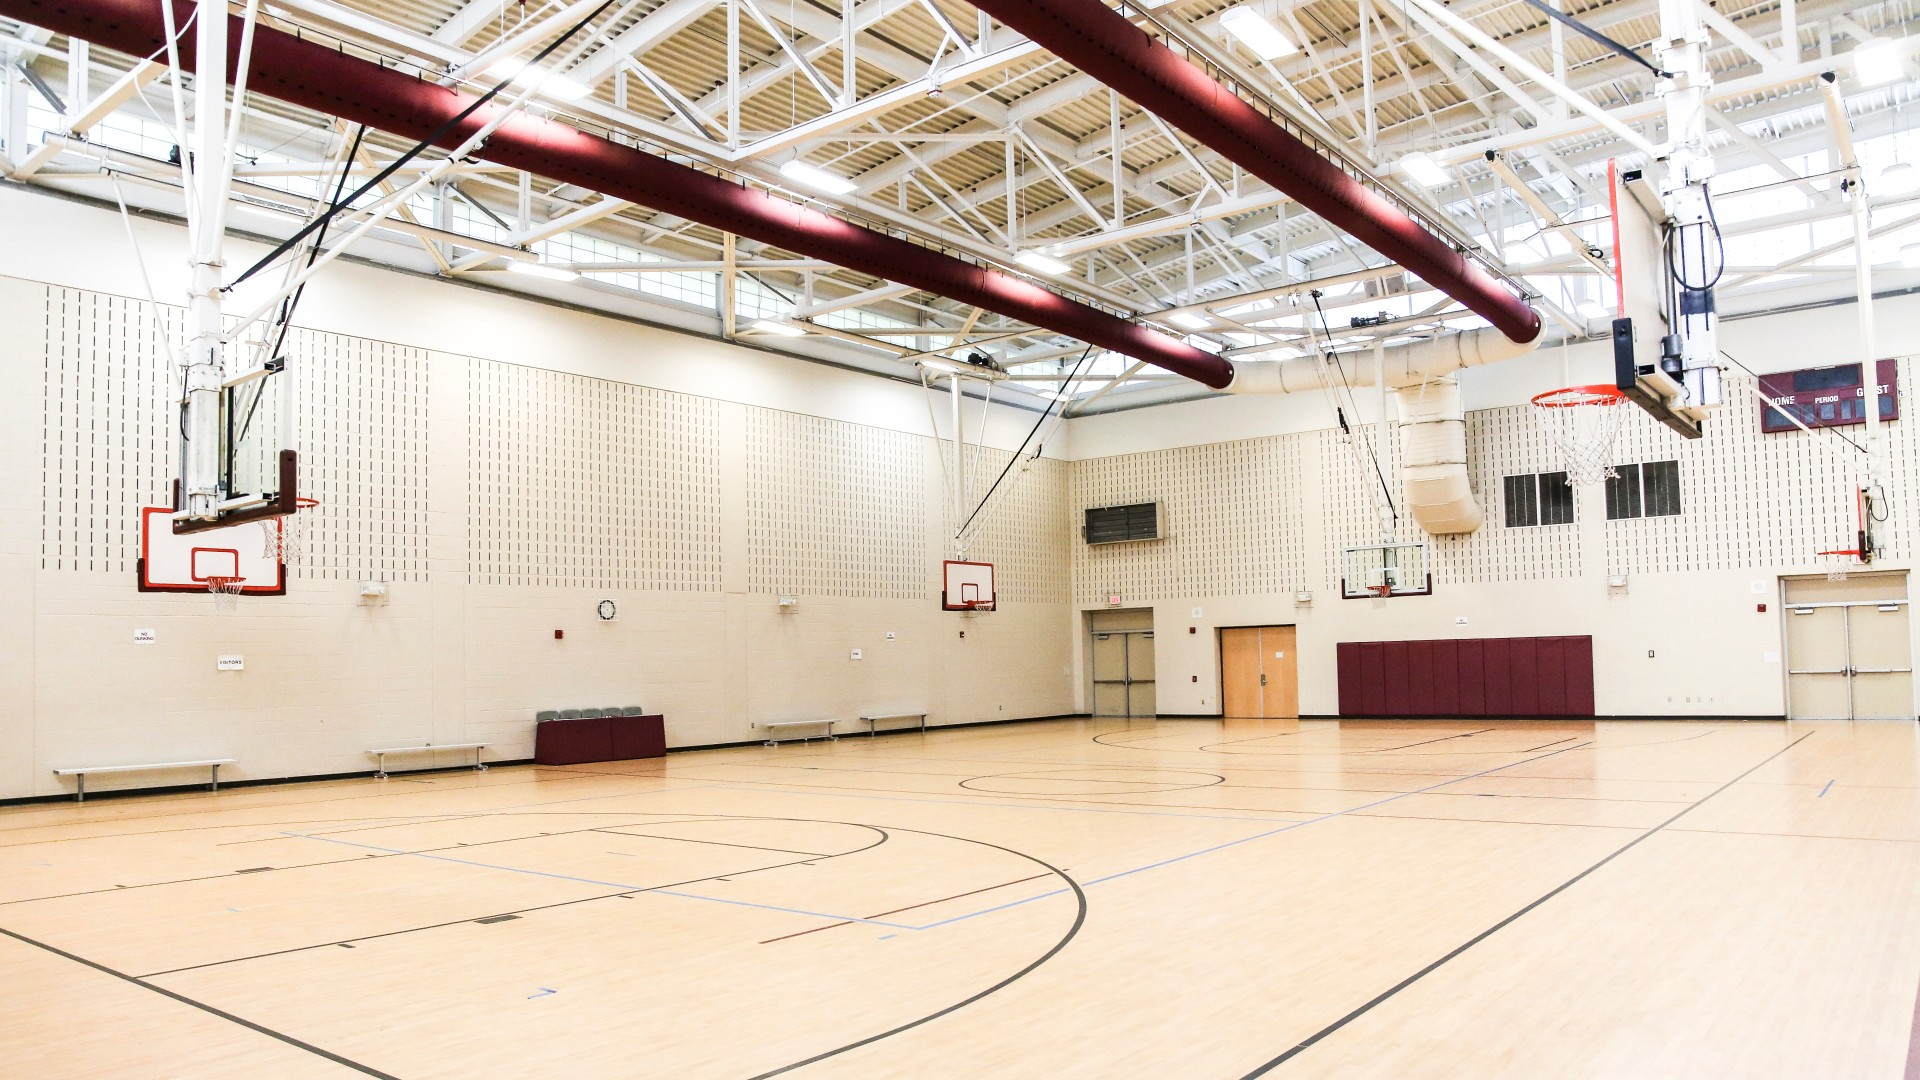 Barwell Road Park gymnasium featuring multiple basketball hoops and open floor